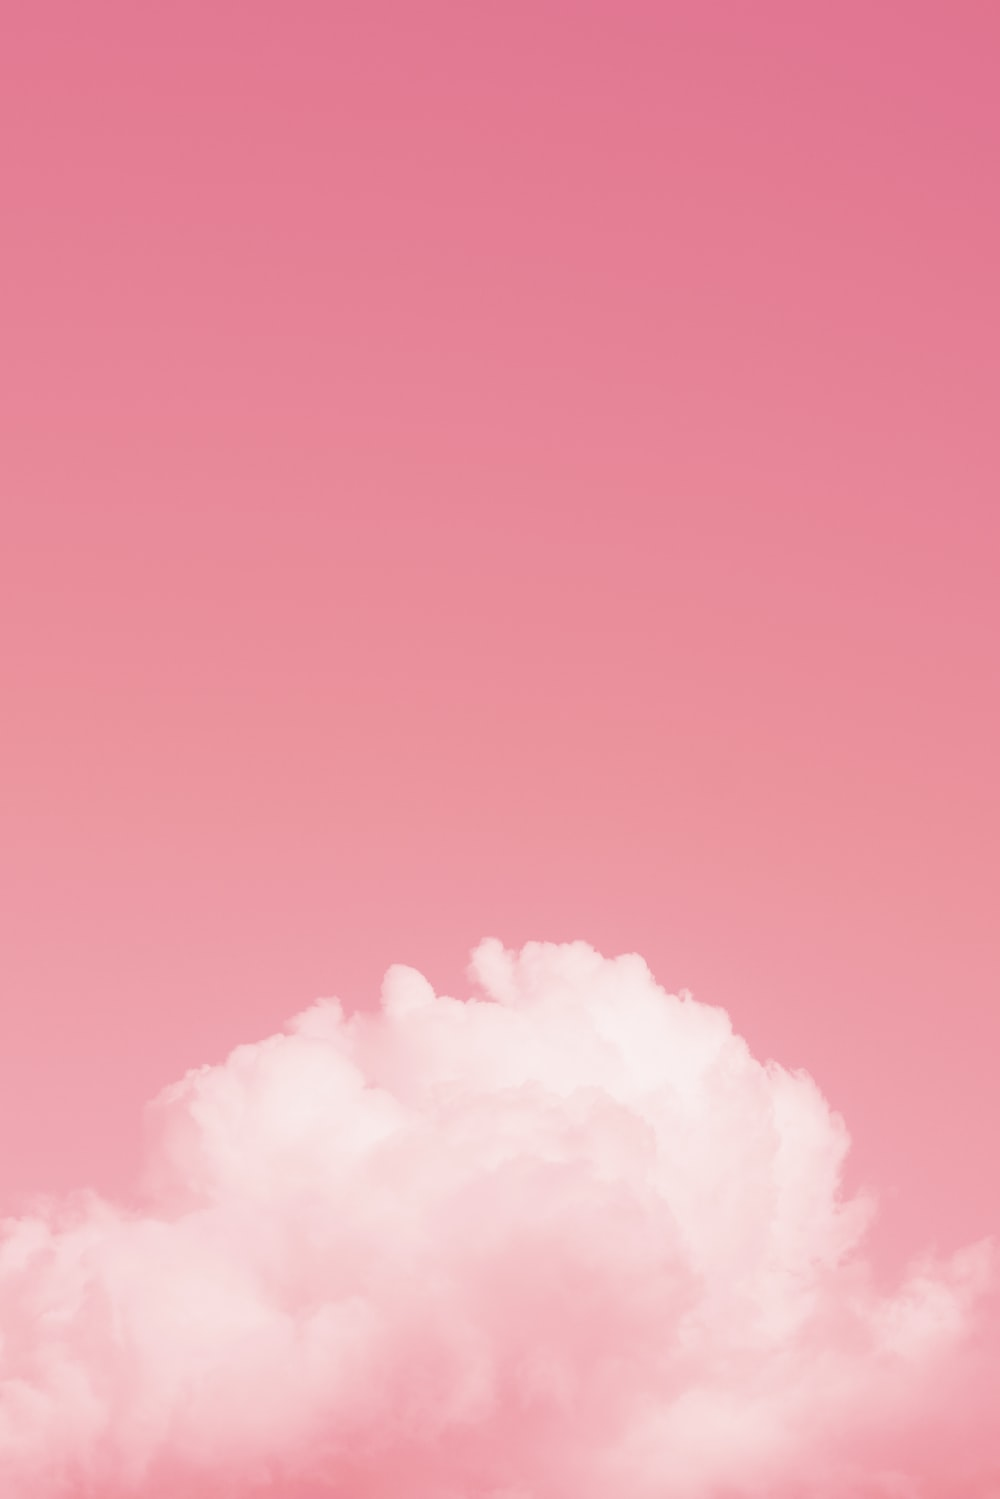 20+ Pink Cloud Pictures   Download Free Images on Unsplash